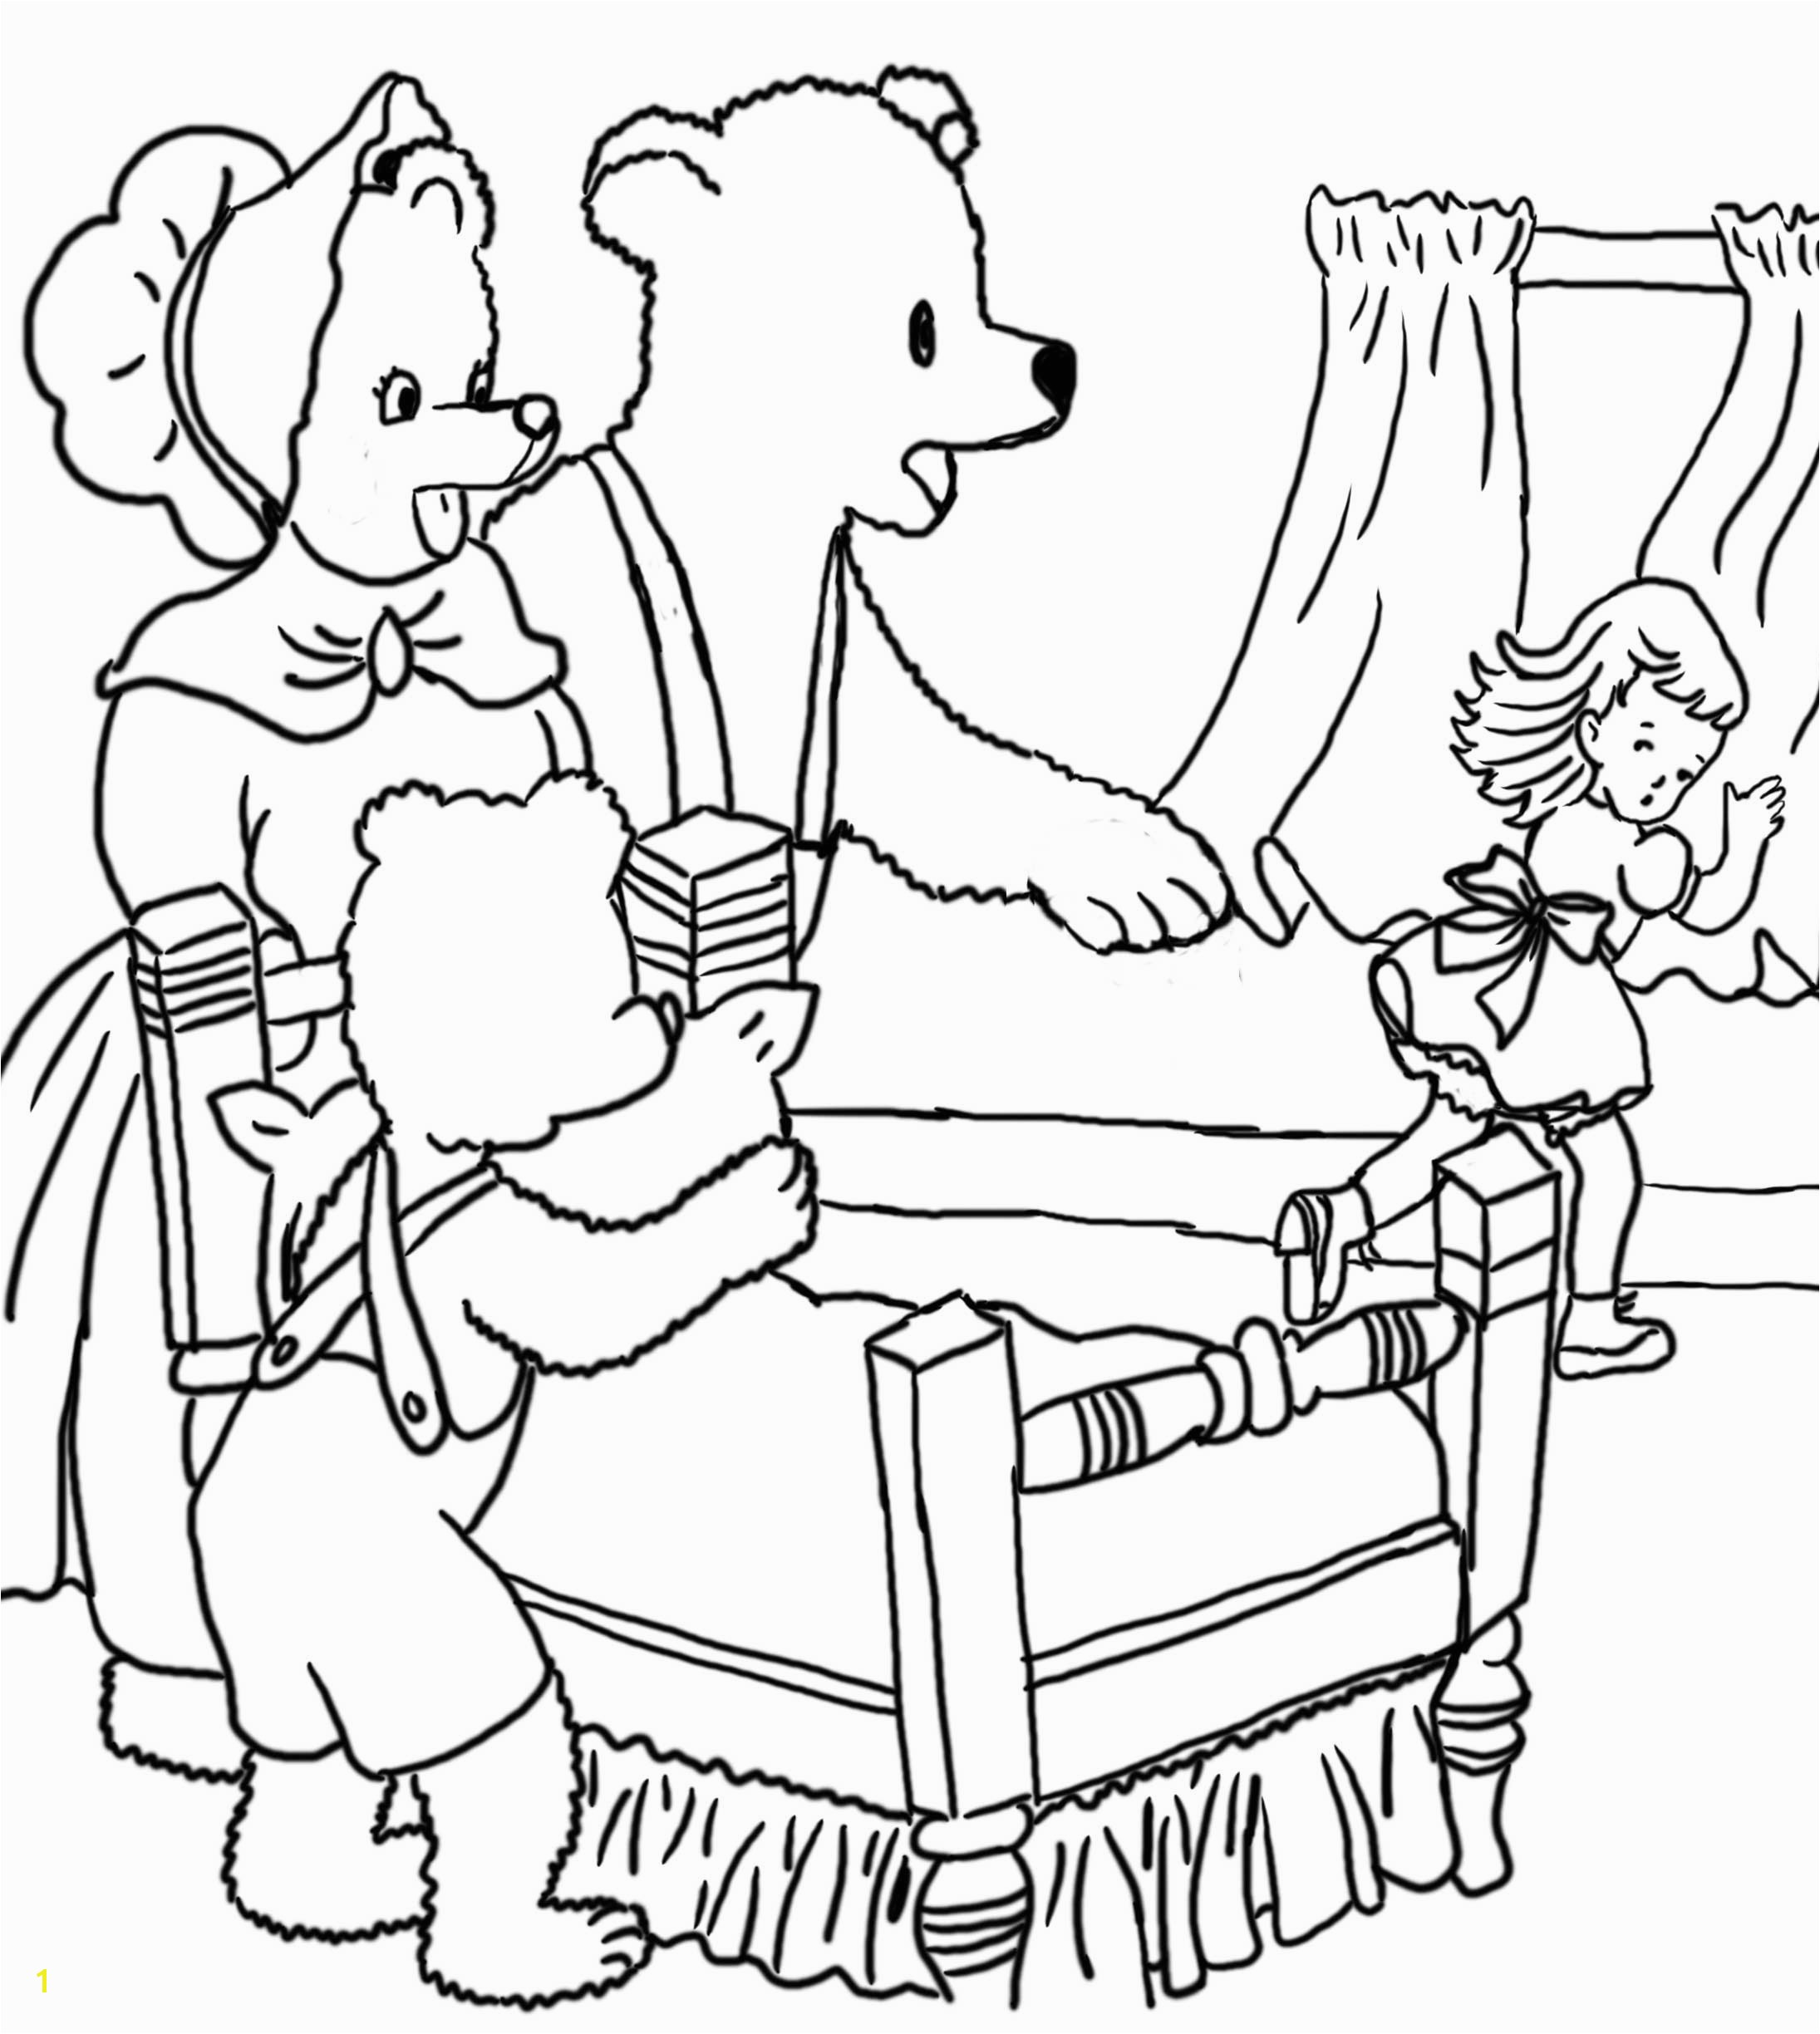 Gol and Bear Coloring Pages Unique Colouring Sheets Goldilocks and the Three Bears Three Bears Coloring